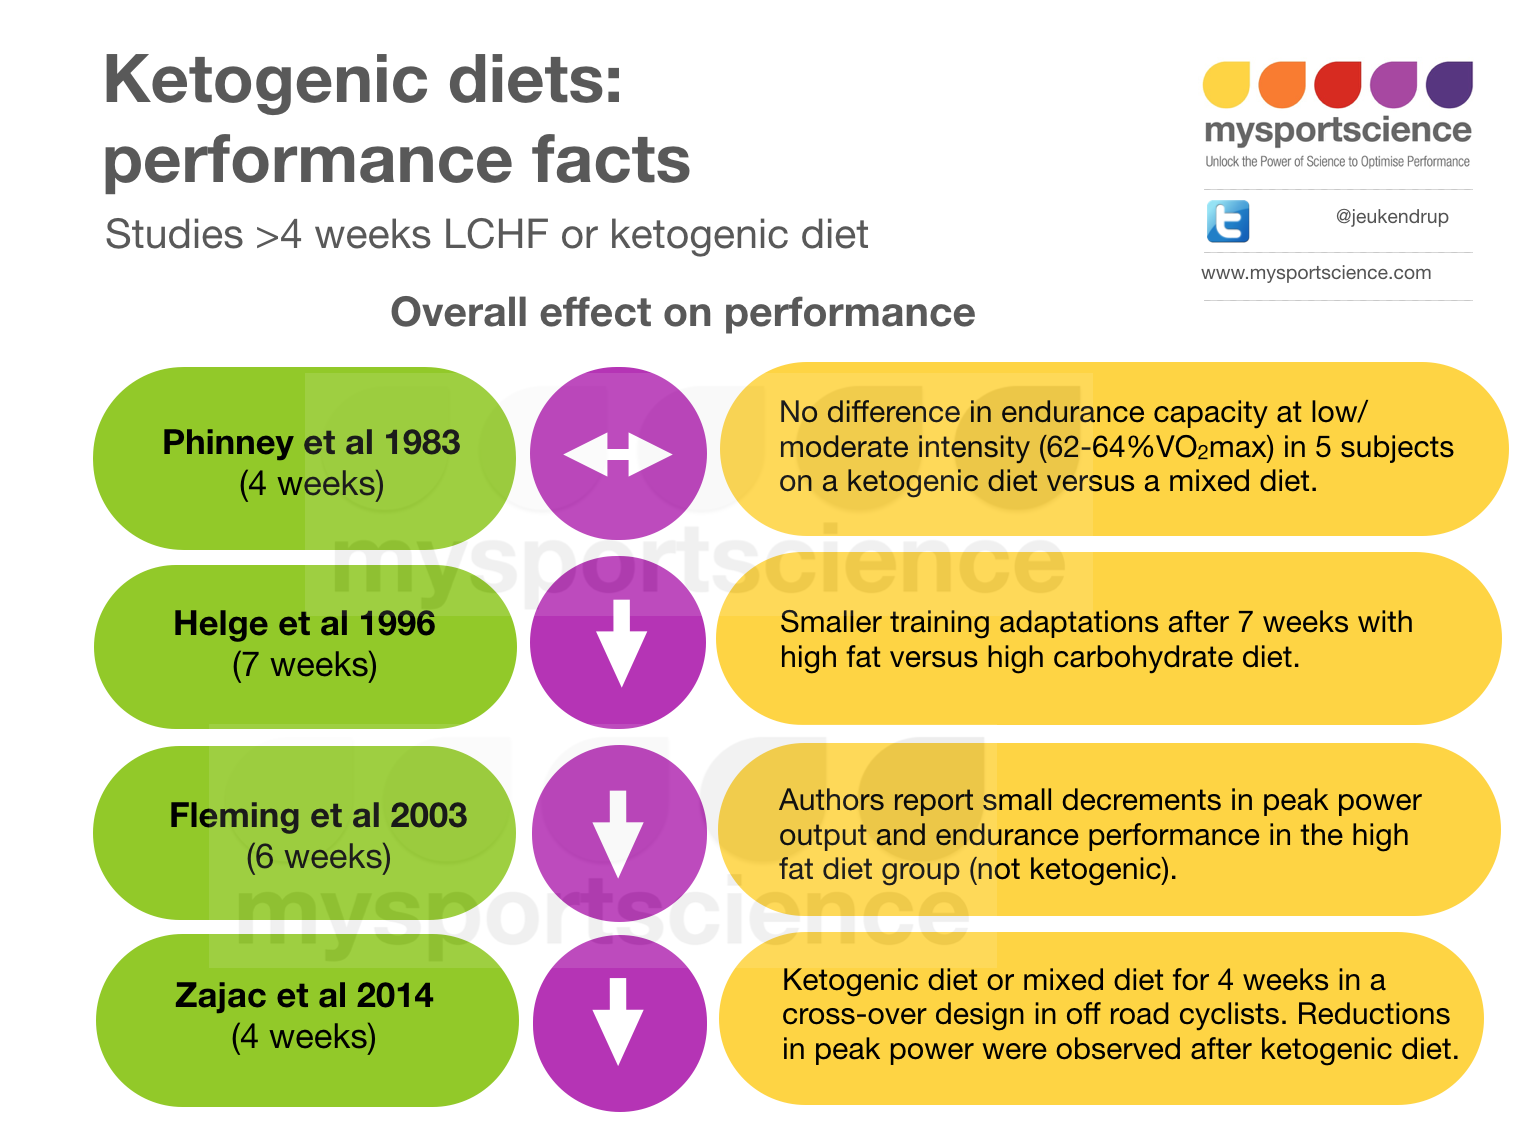 Ketogenic diets for athletes | Jeukendrup - Trusted sports nutrition advice & exercise science news